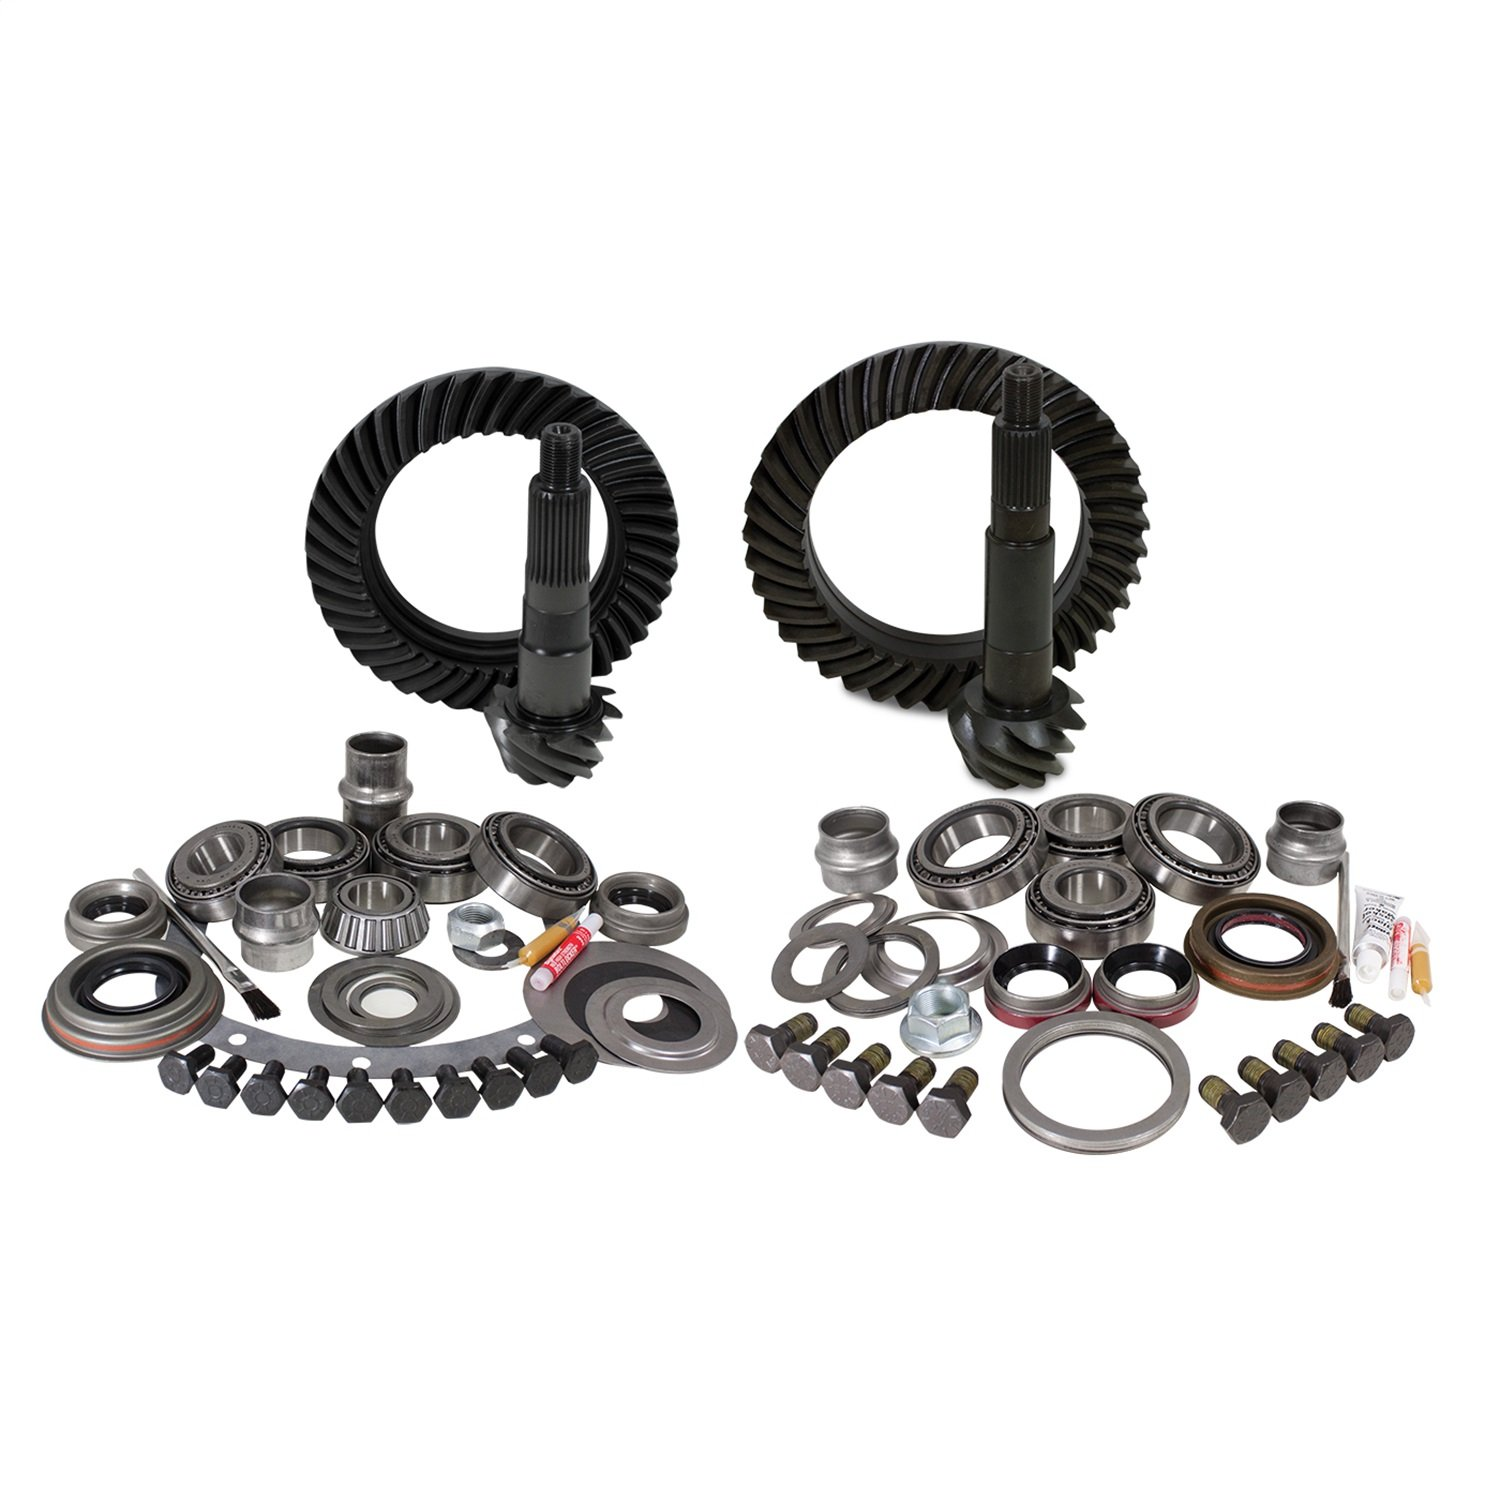 Yukon Gear & Axle (YGK007) Install Kit for Jeep TJ Dana 30 Front Dana 44 Rear, 4.56 Ratio)